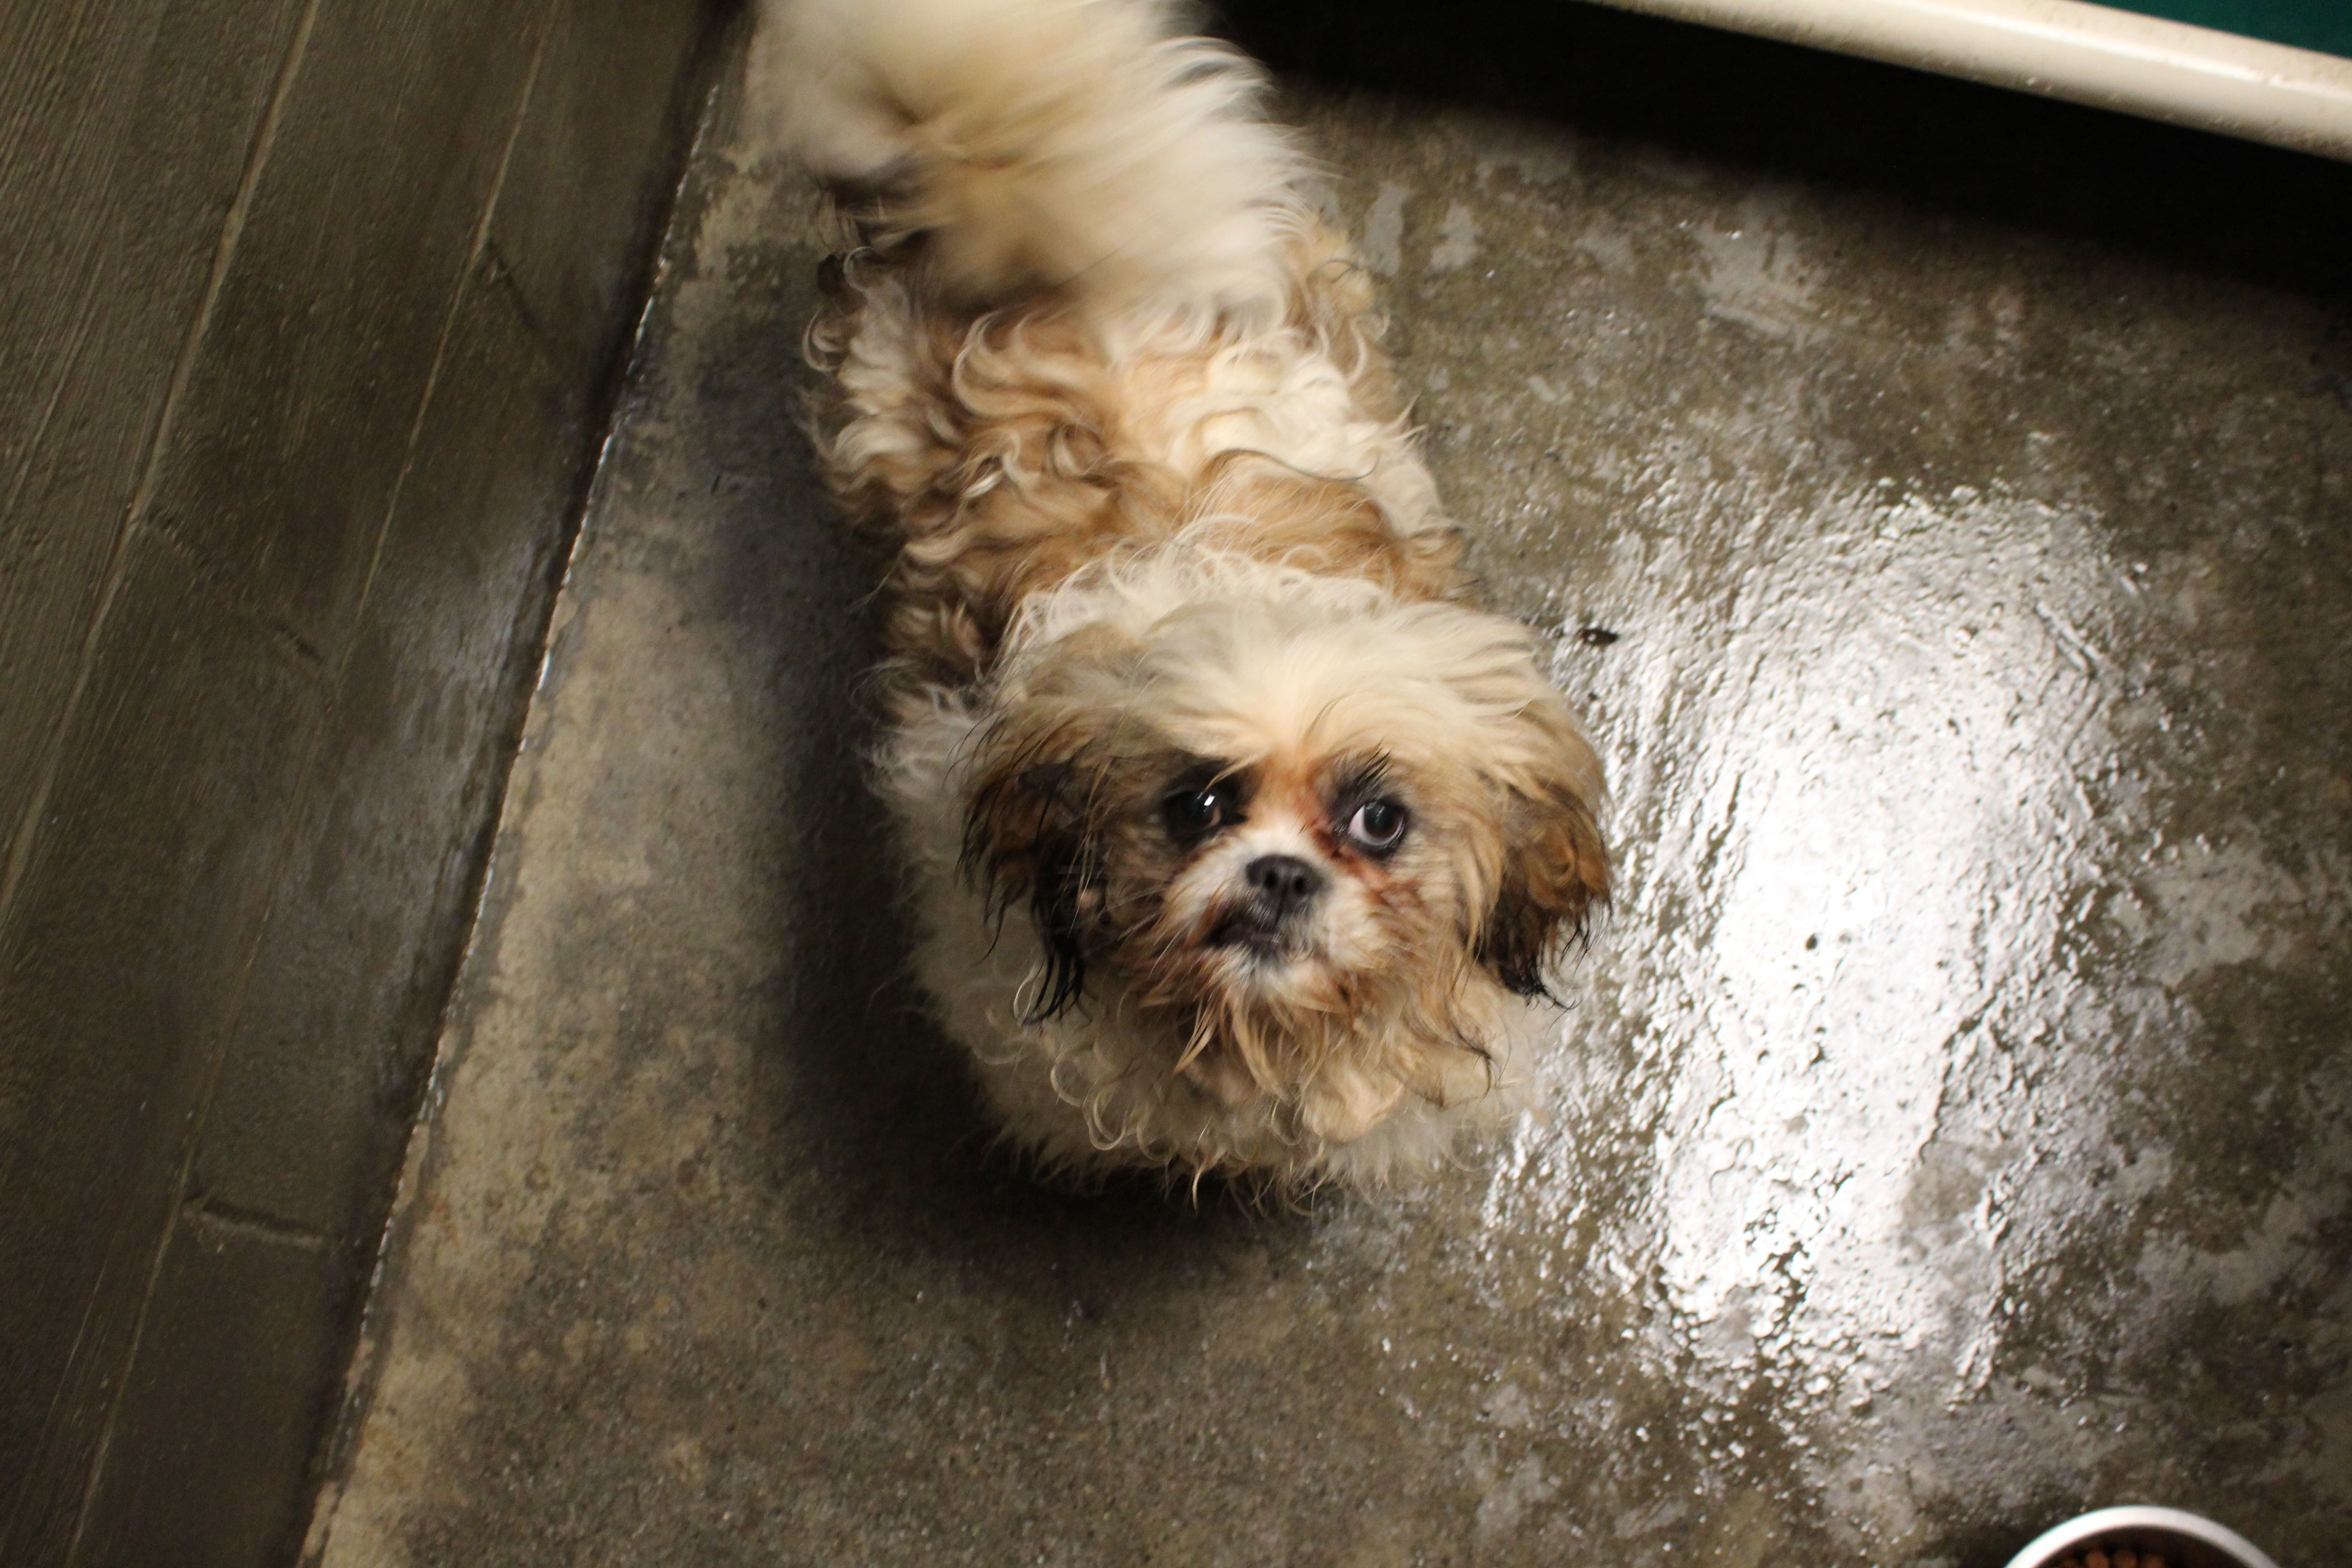 This Gal Was A Lost Dog In Crescent City And Is In The Dog Pound Now She Is A Schitzu Or Lhasa Apso Maybe She Needs Her Family To Dog Pounds